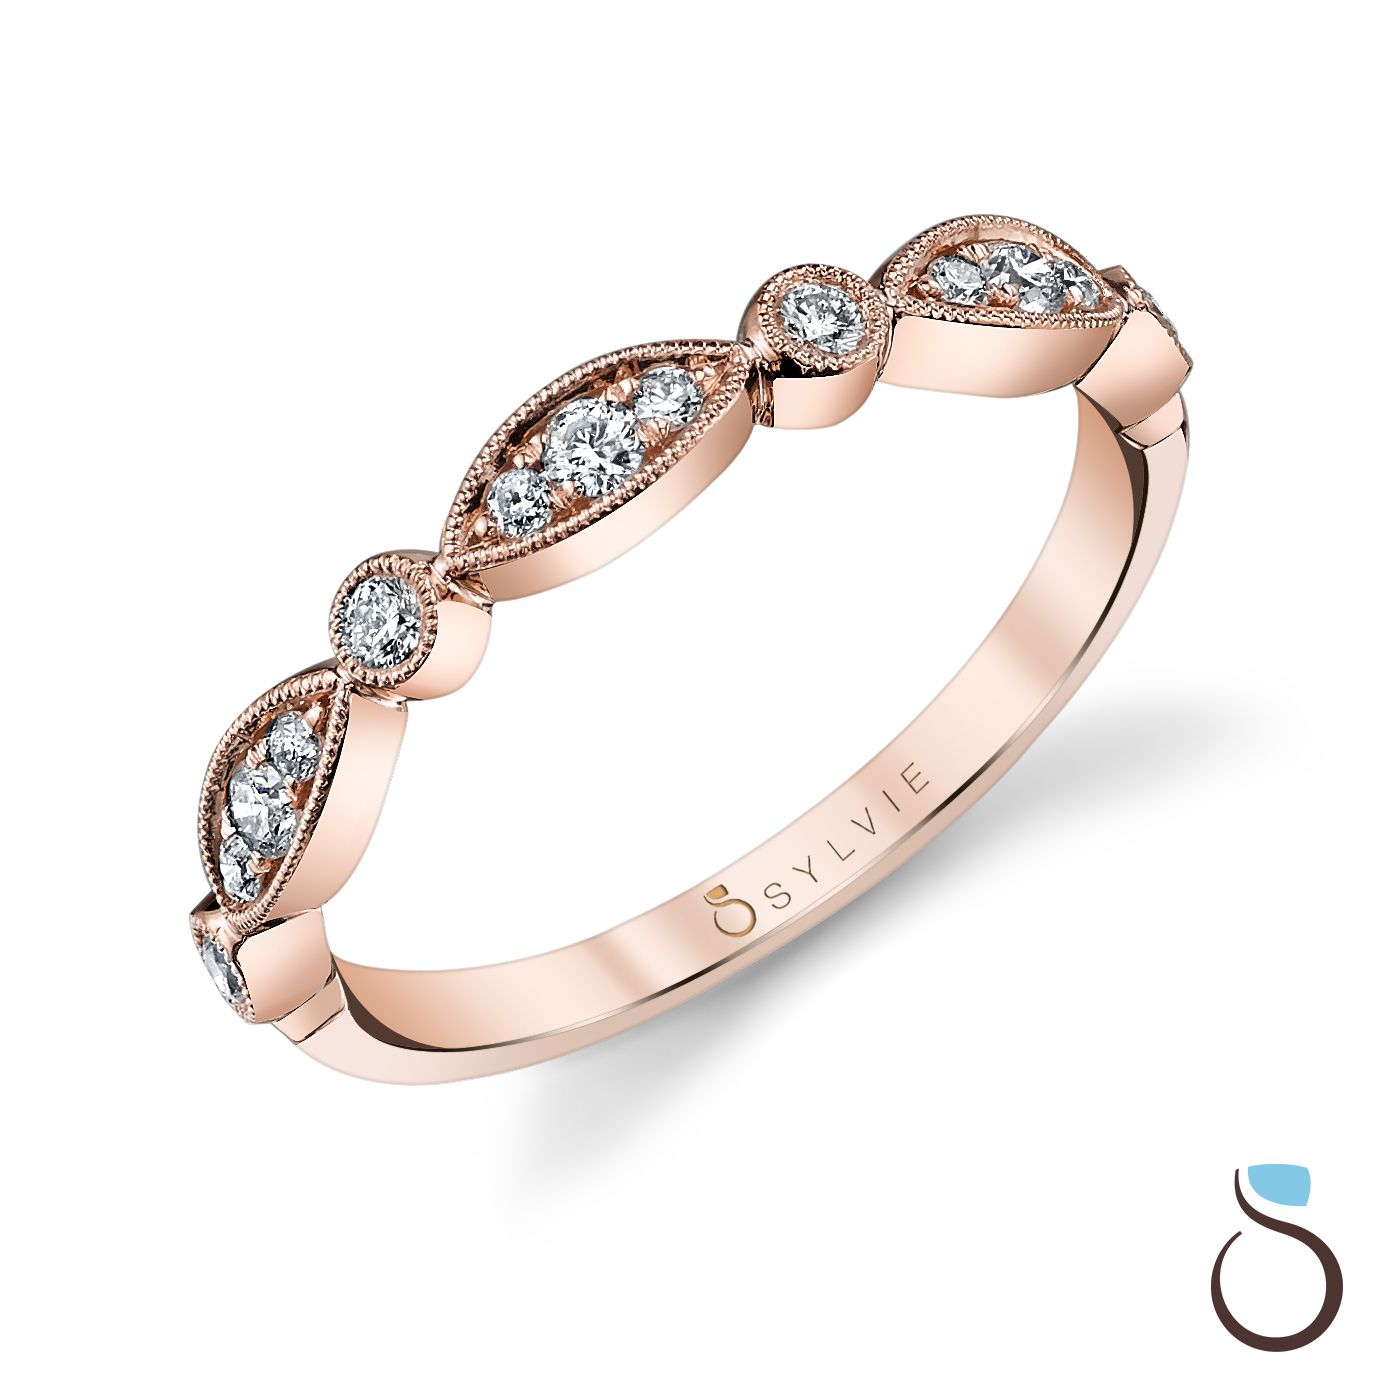 Diamond Jewelry, Vintage And Modern Bridal Jewelry | Wedding With Regard To Newest Marquise And Round Diamond Alternating Anniversary Bands In Rose Gold (View 4 of 25)